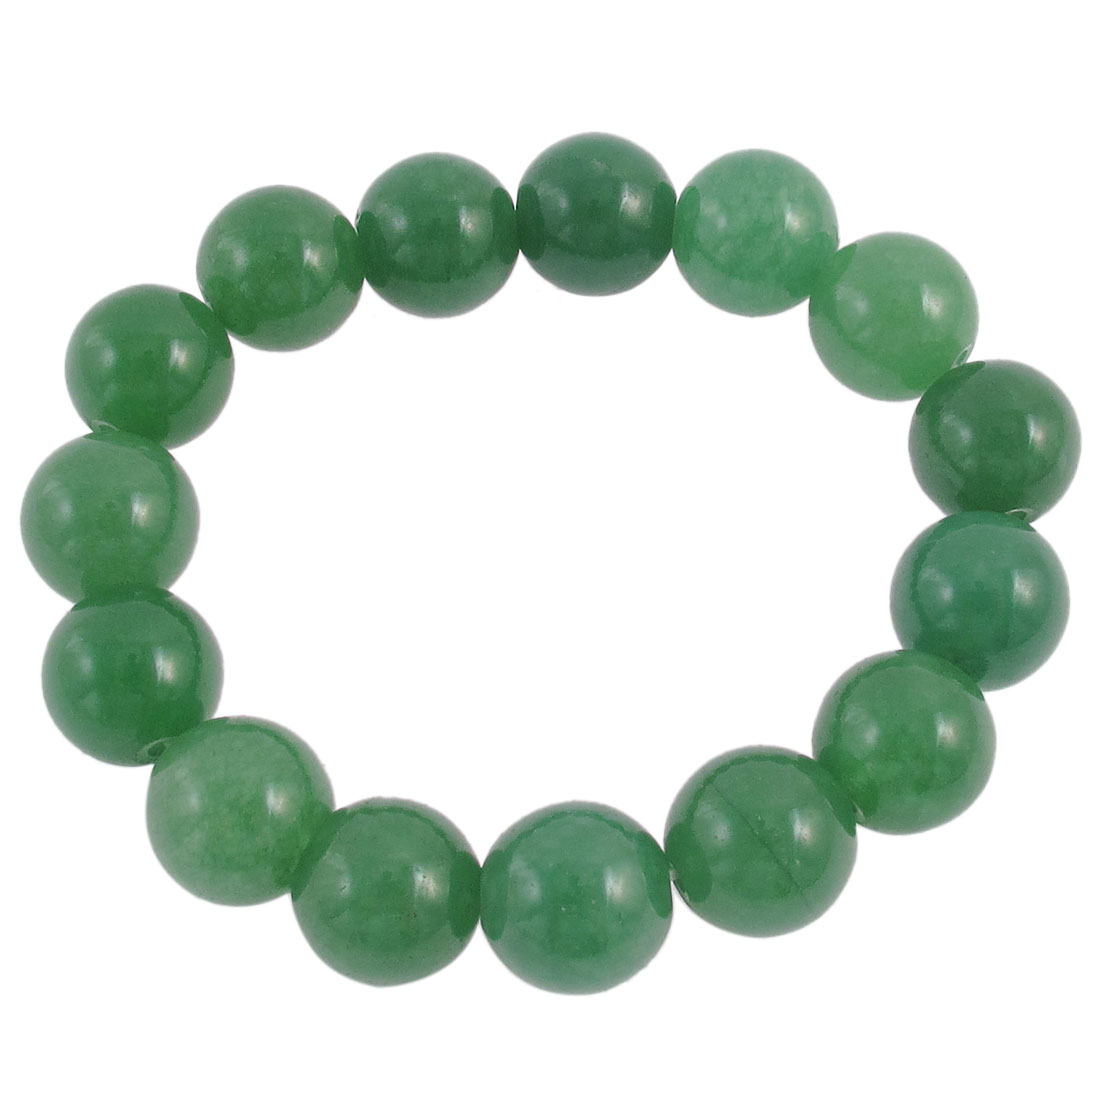 Lady Round Faux Jade Bead Linked Elastic Wrist Bracelet Bangle Decor Green